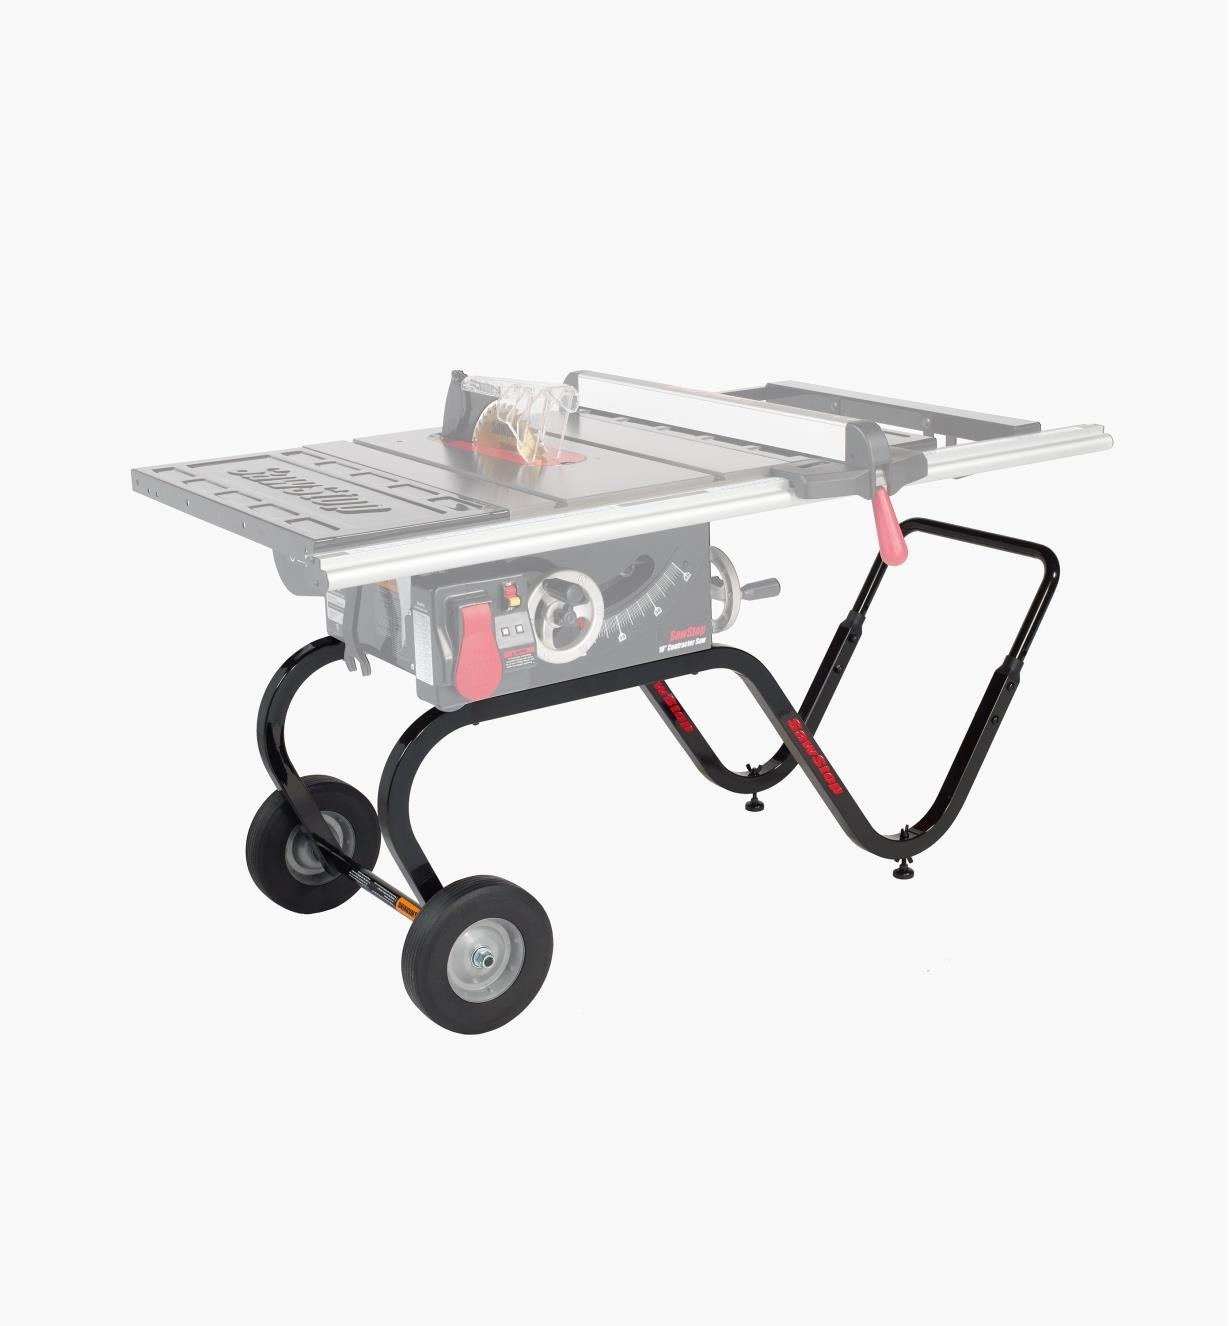 95T0450 - Mobile Cart for Contractor Saw